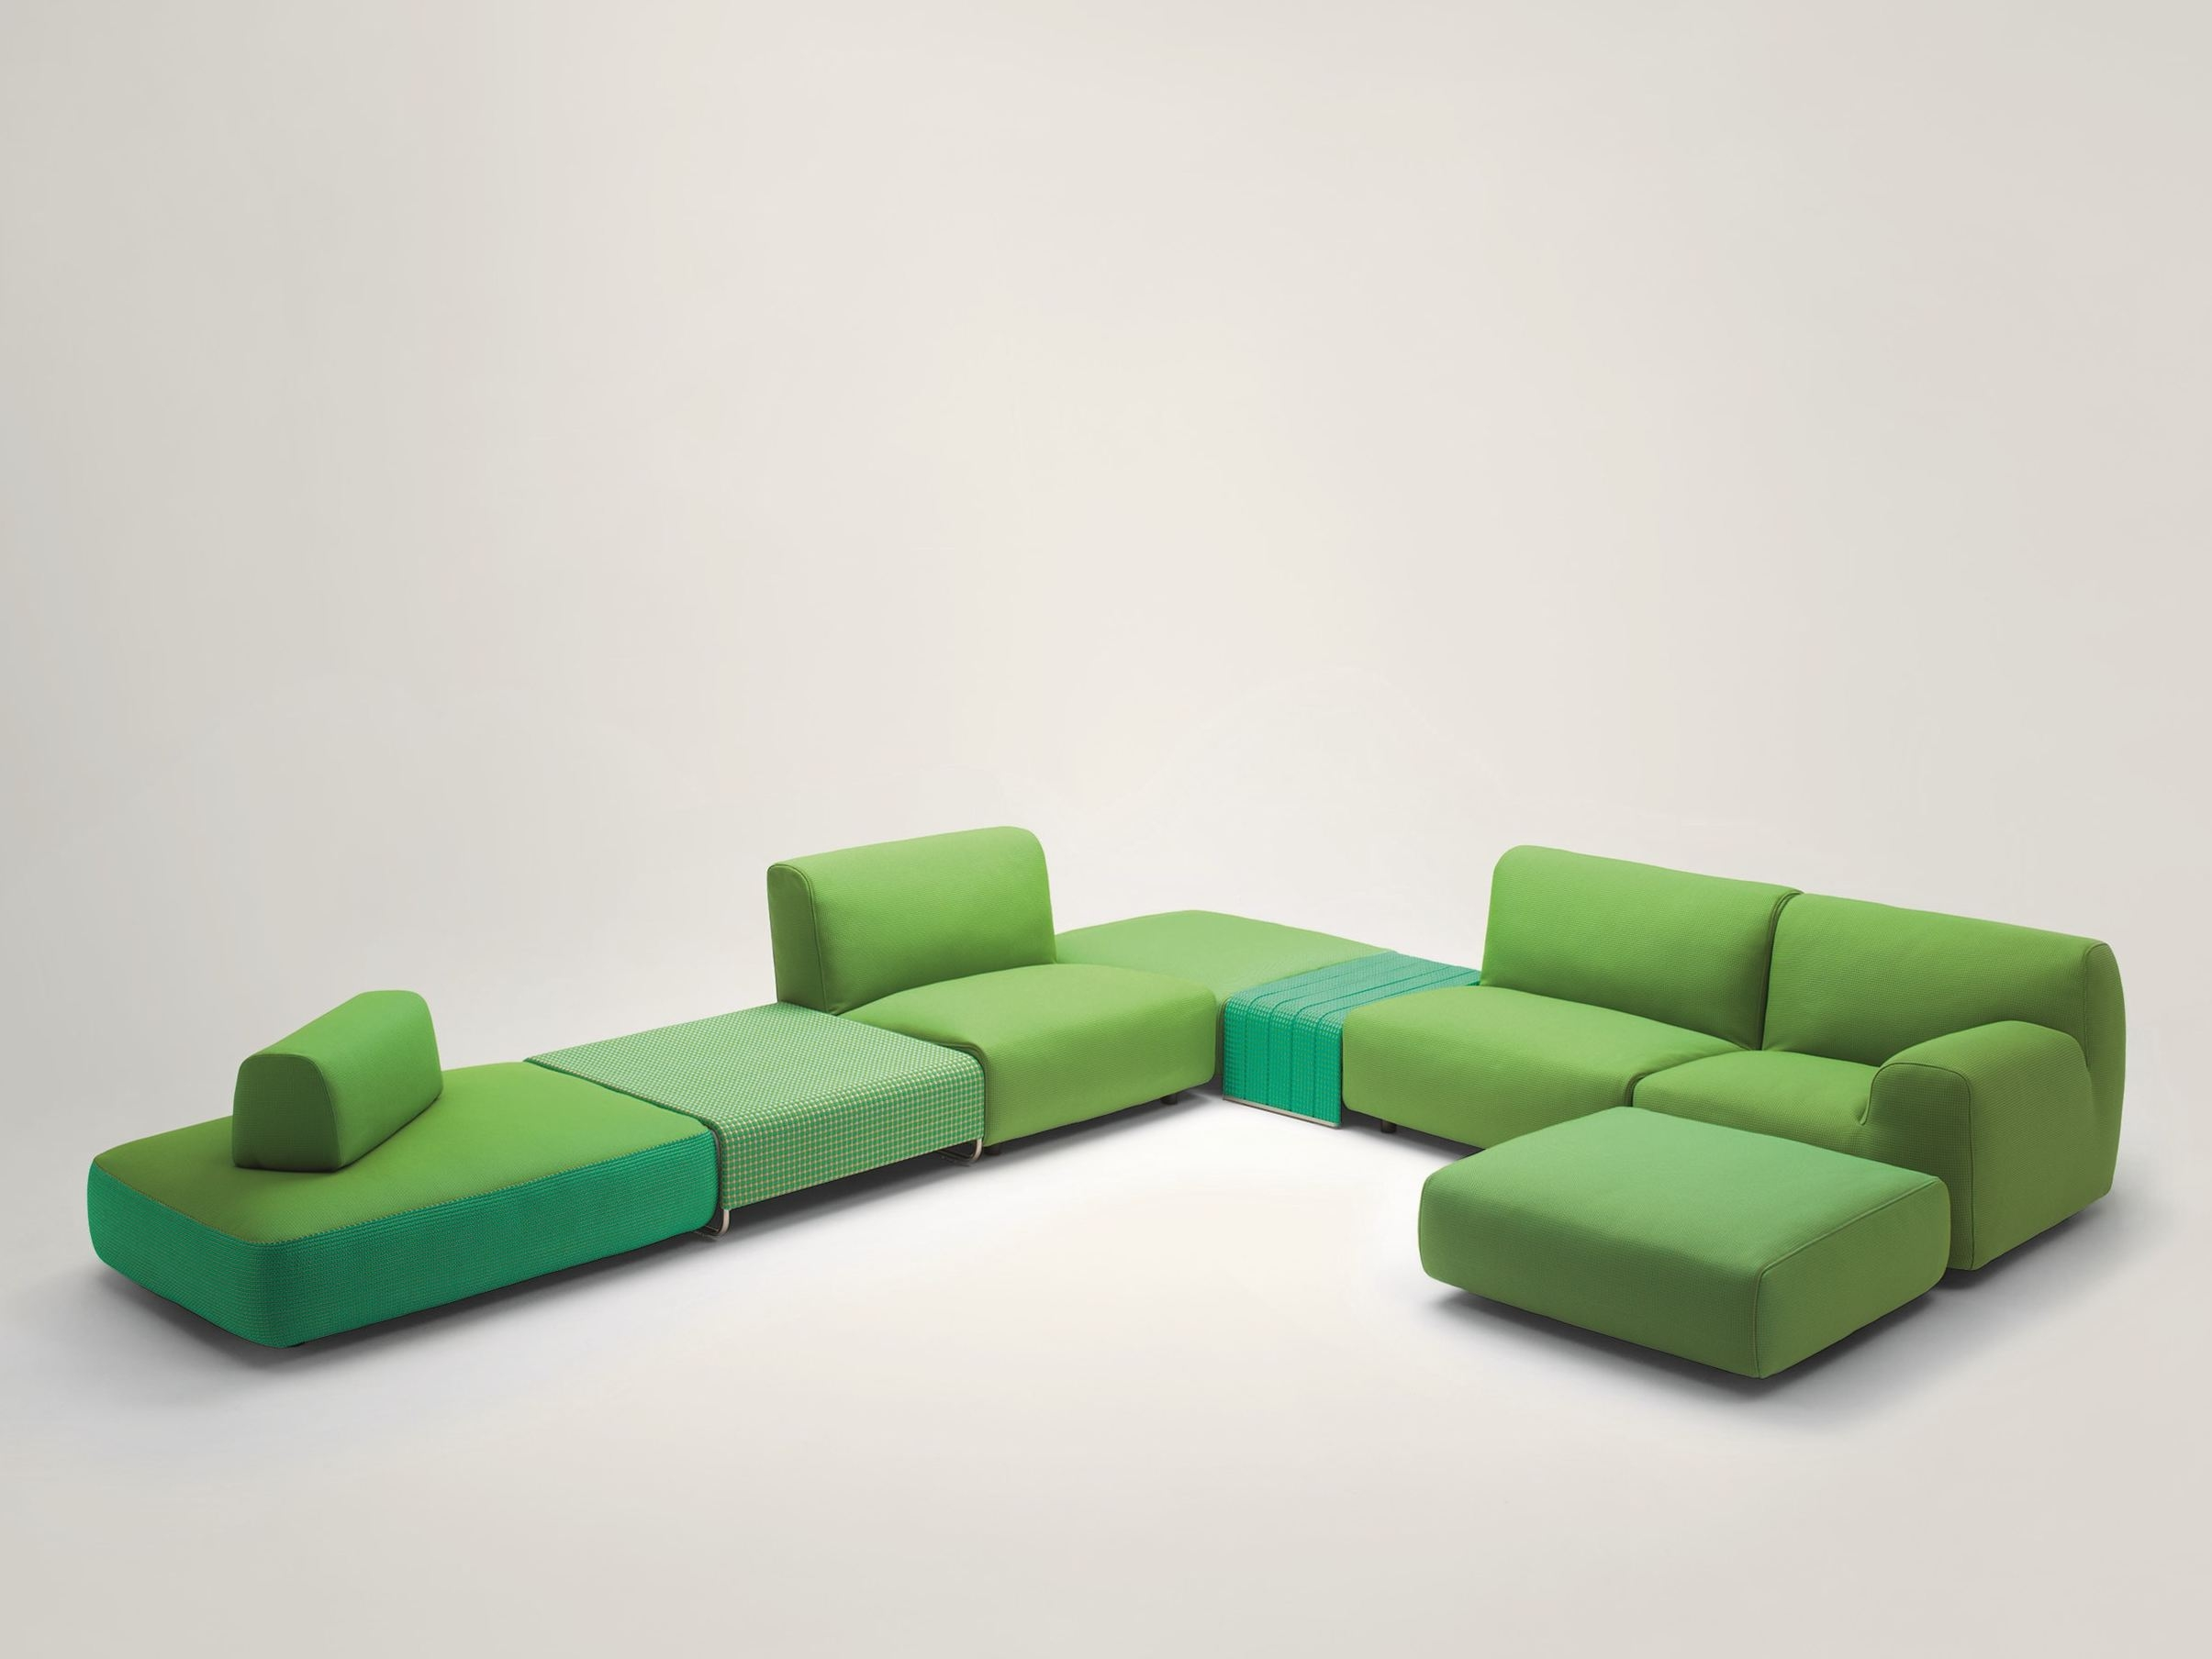 Sectional Sofa With Removable Cover Welcome Aqua Collection Intended For Sofa With Removable Cover (Image 9 of 15)